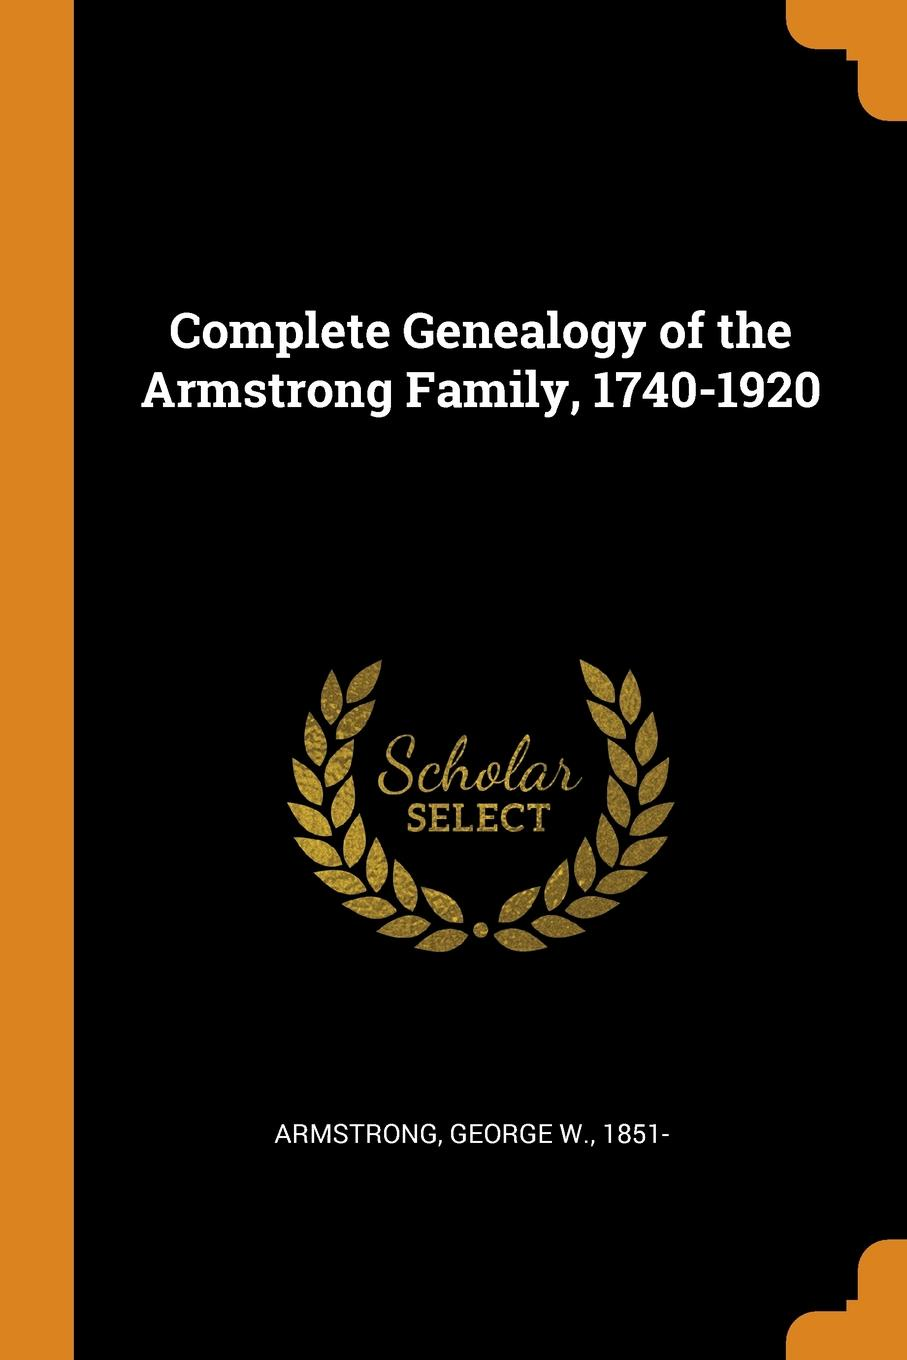 Complete Genealogy of the Armstrong Family, 1740-1920